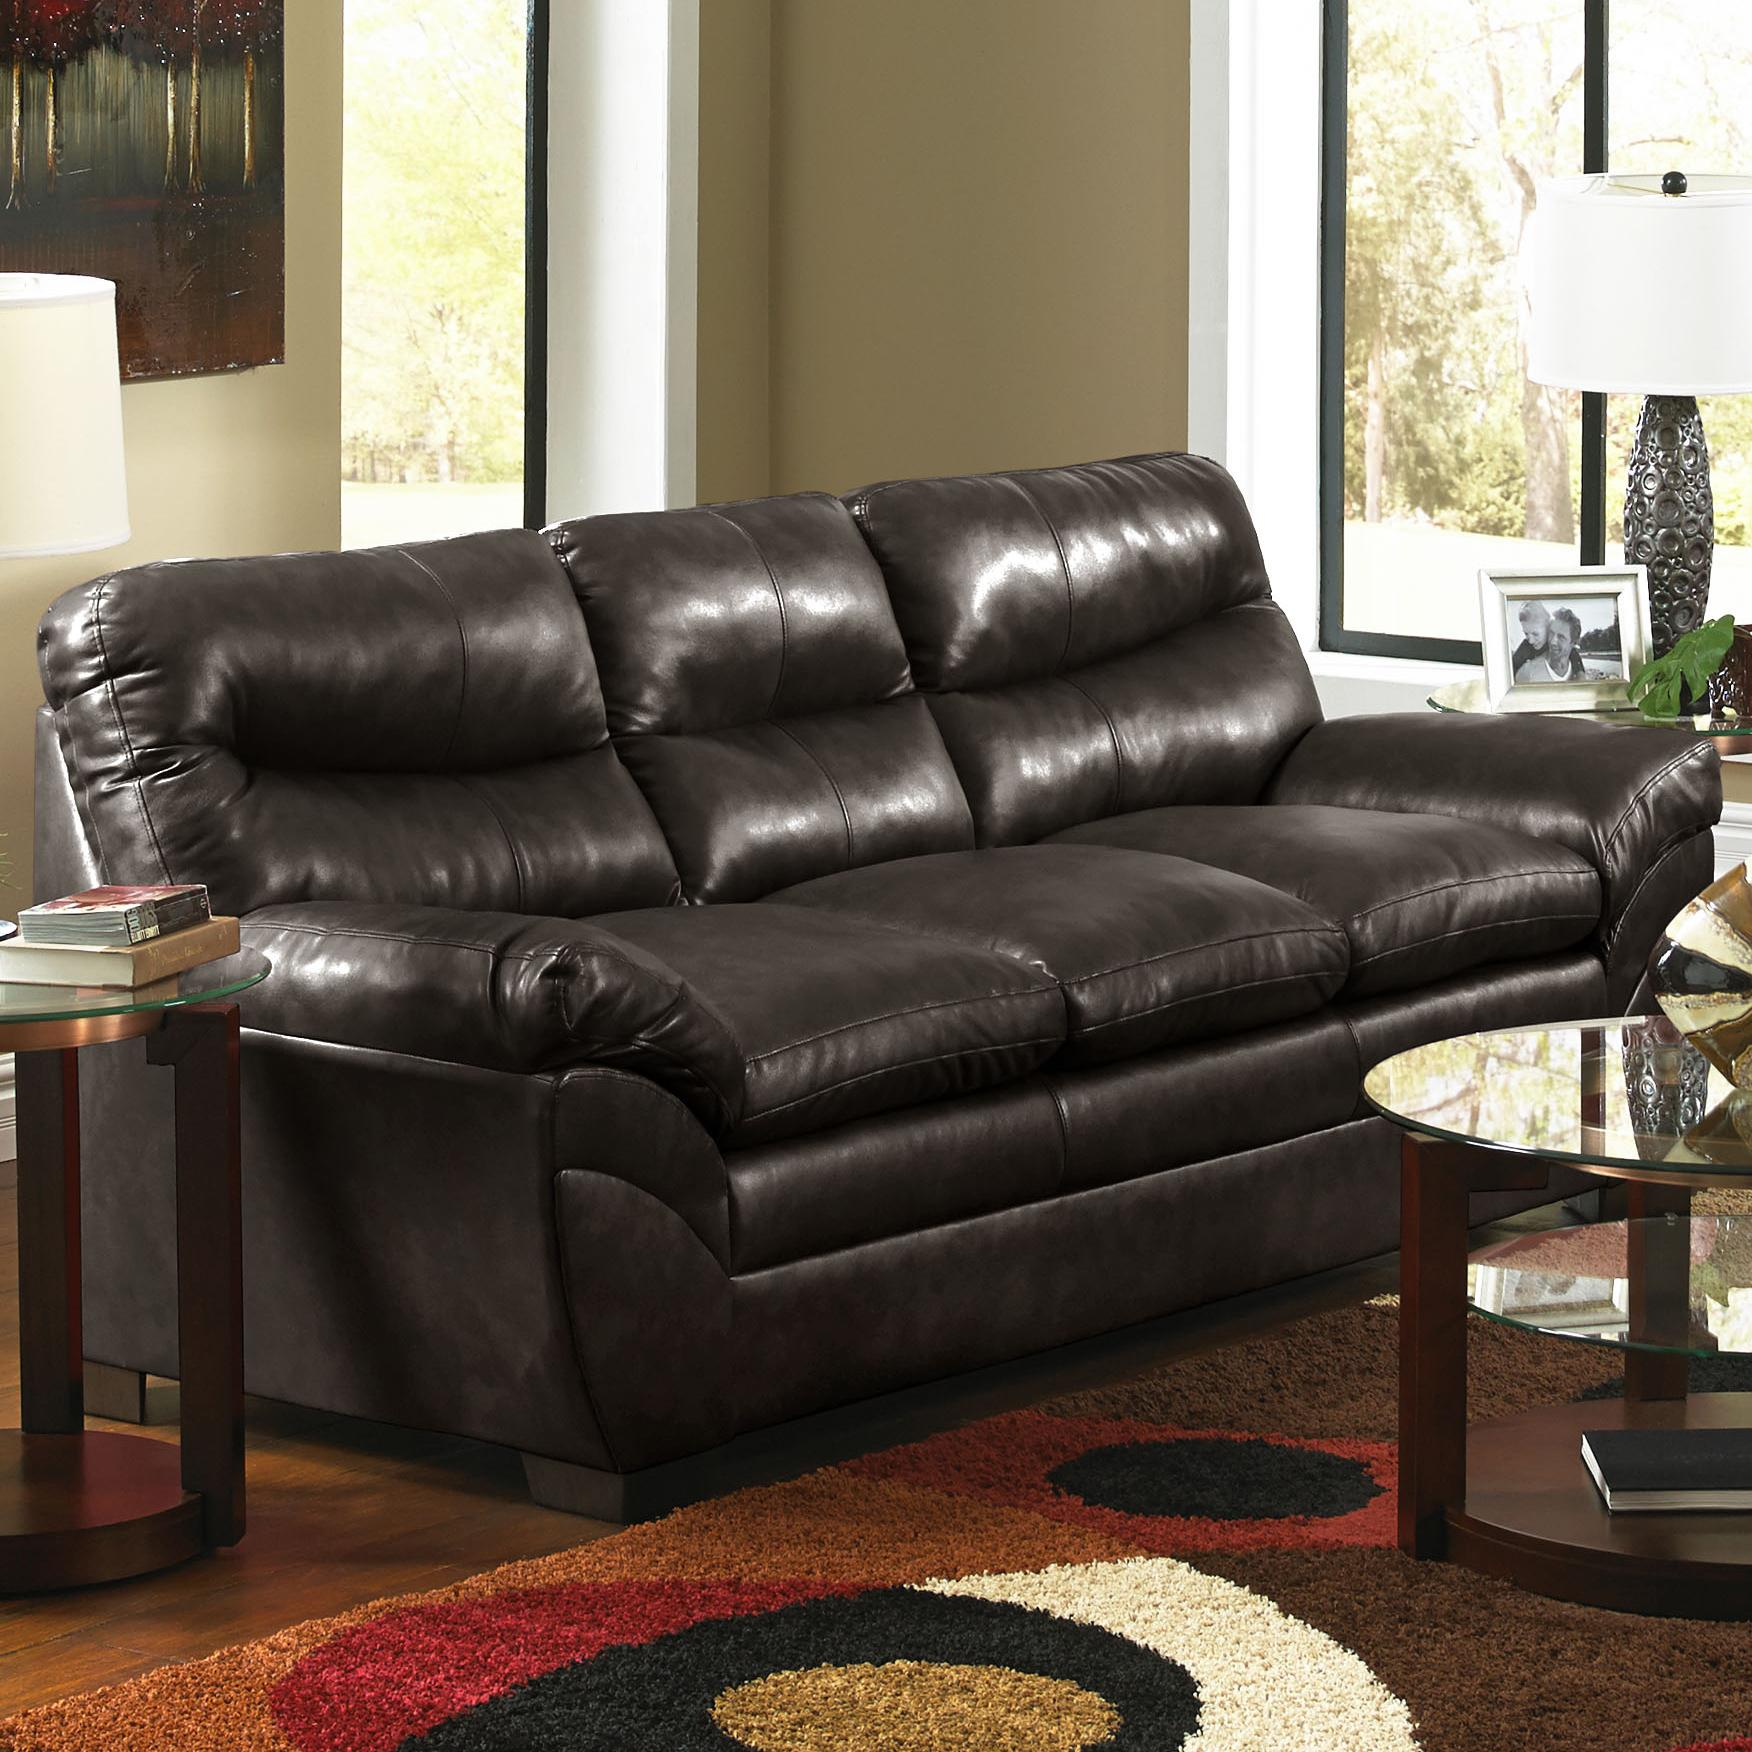 United Furniture Industries 9515 Casual Contemporary Three